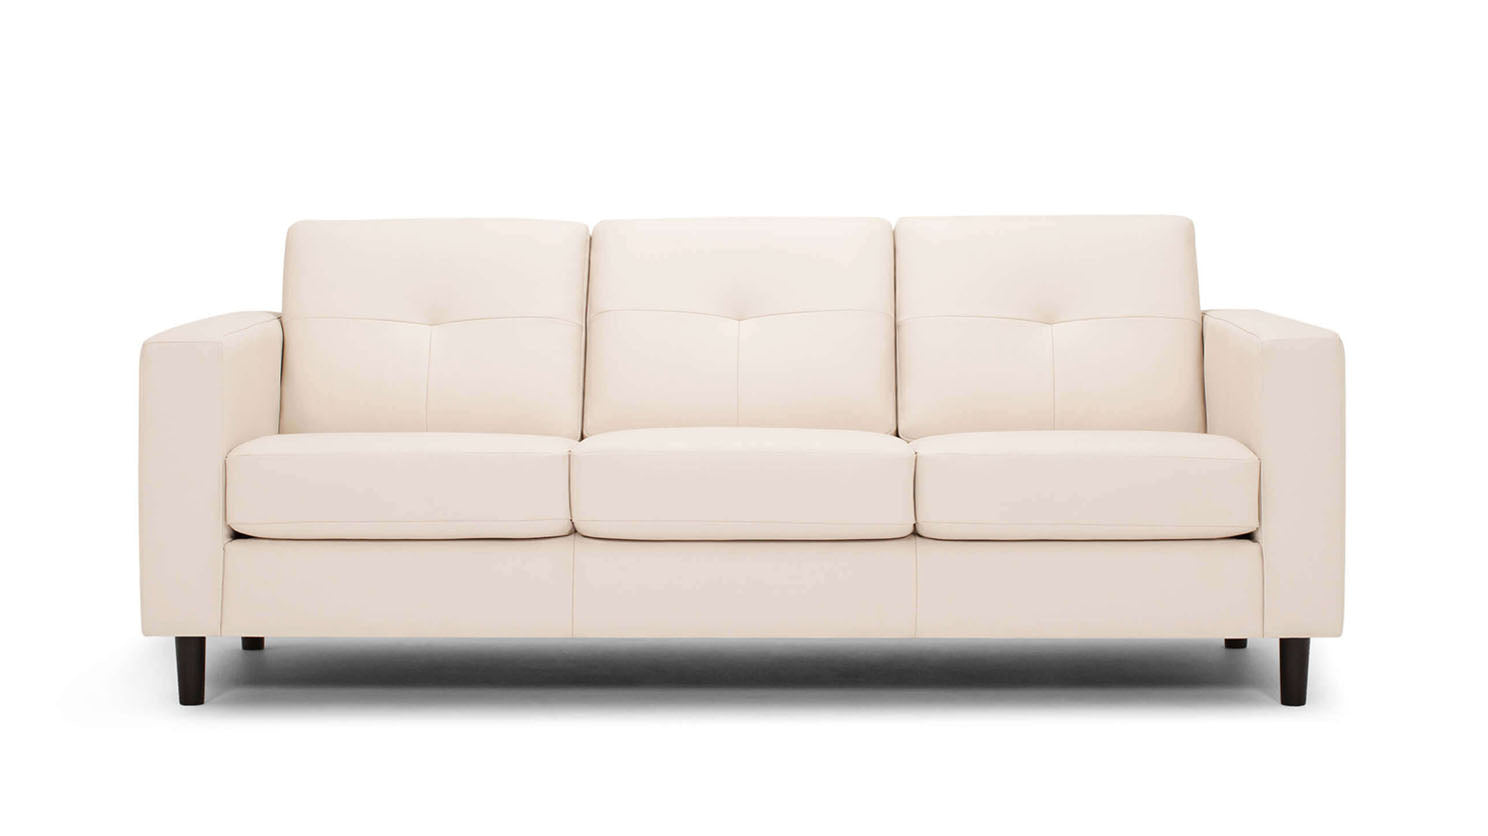 solo sofa - leather